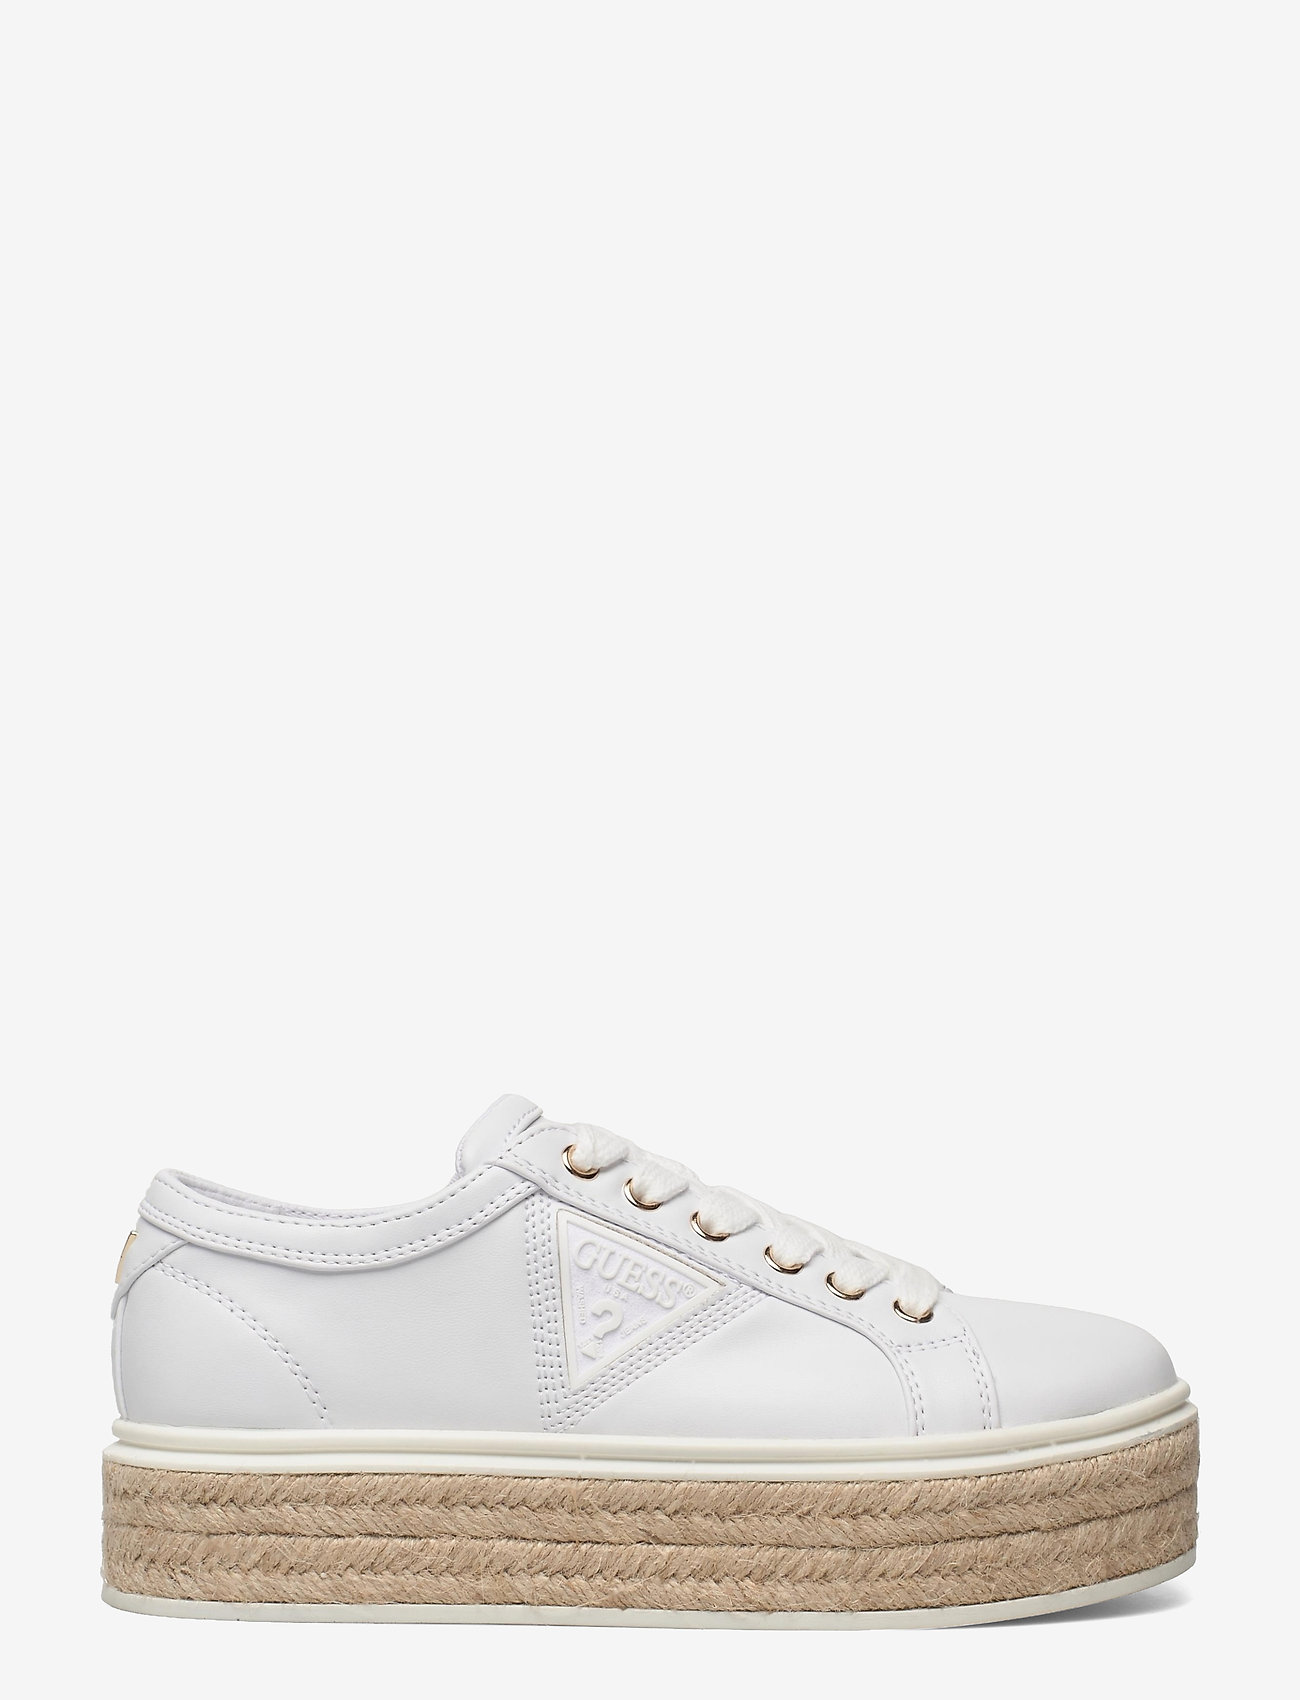 GUESS - PROPERT/ACTIVE LADY/FABRIC - låga sneakers - white - 1